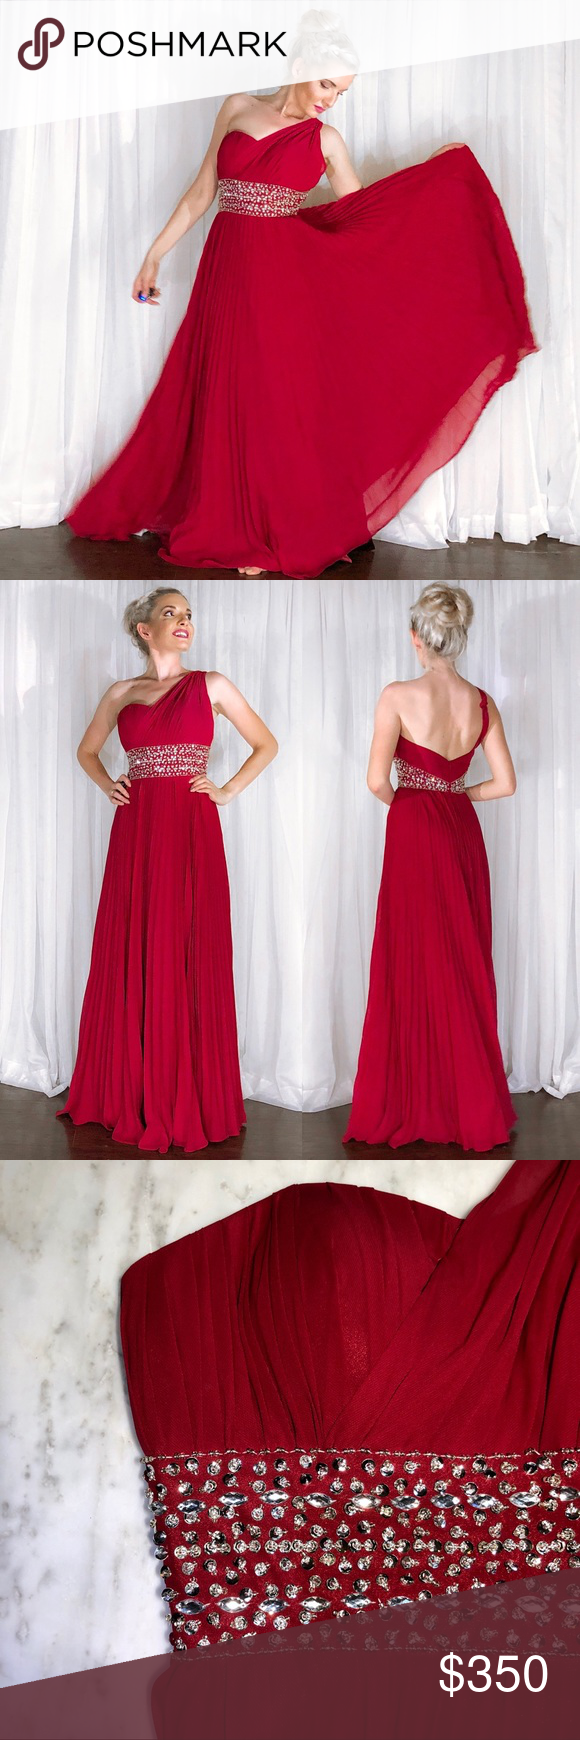 One shoulder rhinestone red pageant prom gown boutique my posh